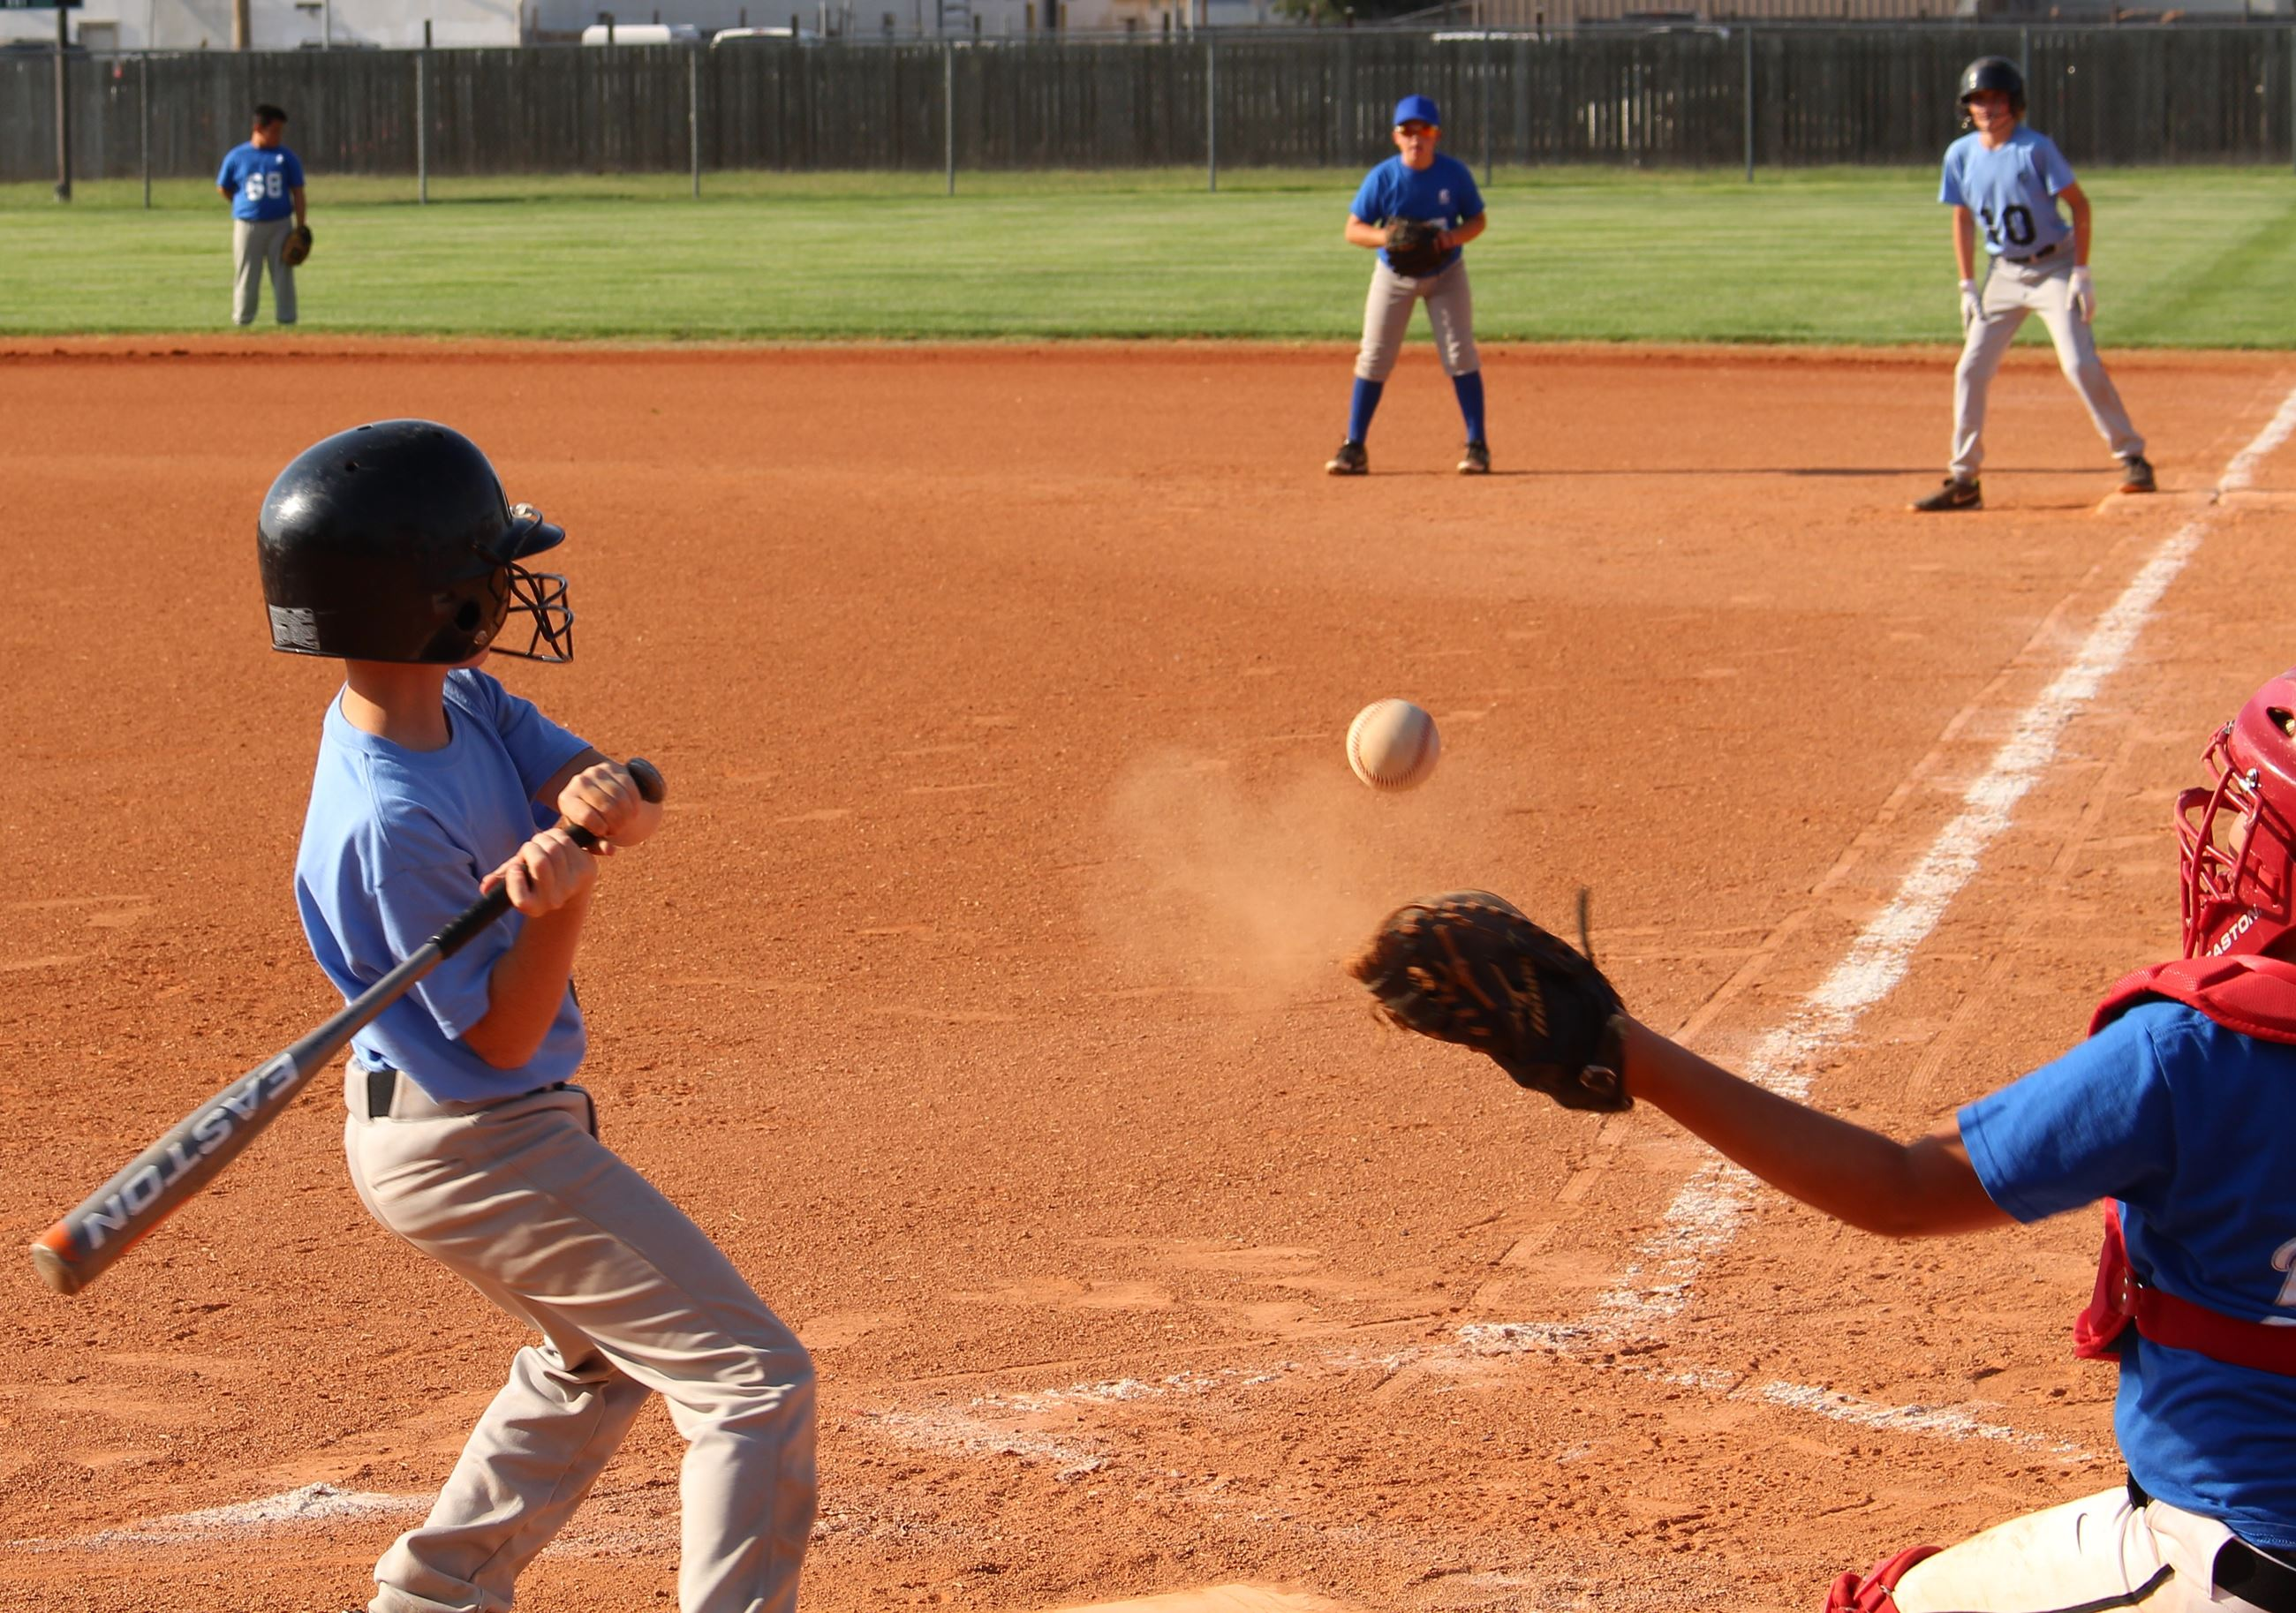 Youth Baseball - Boy hitting the ball